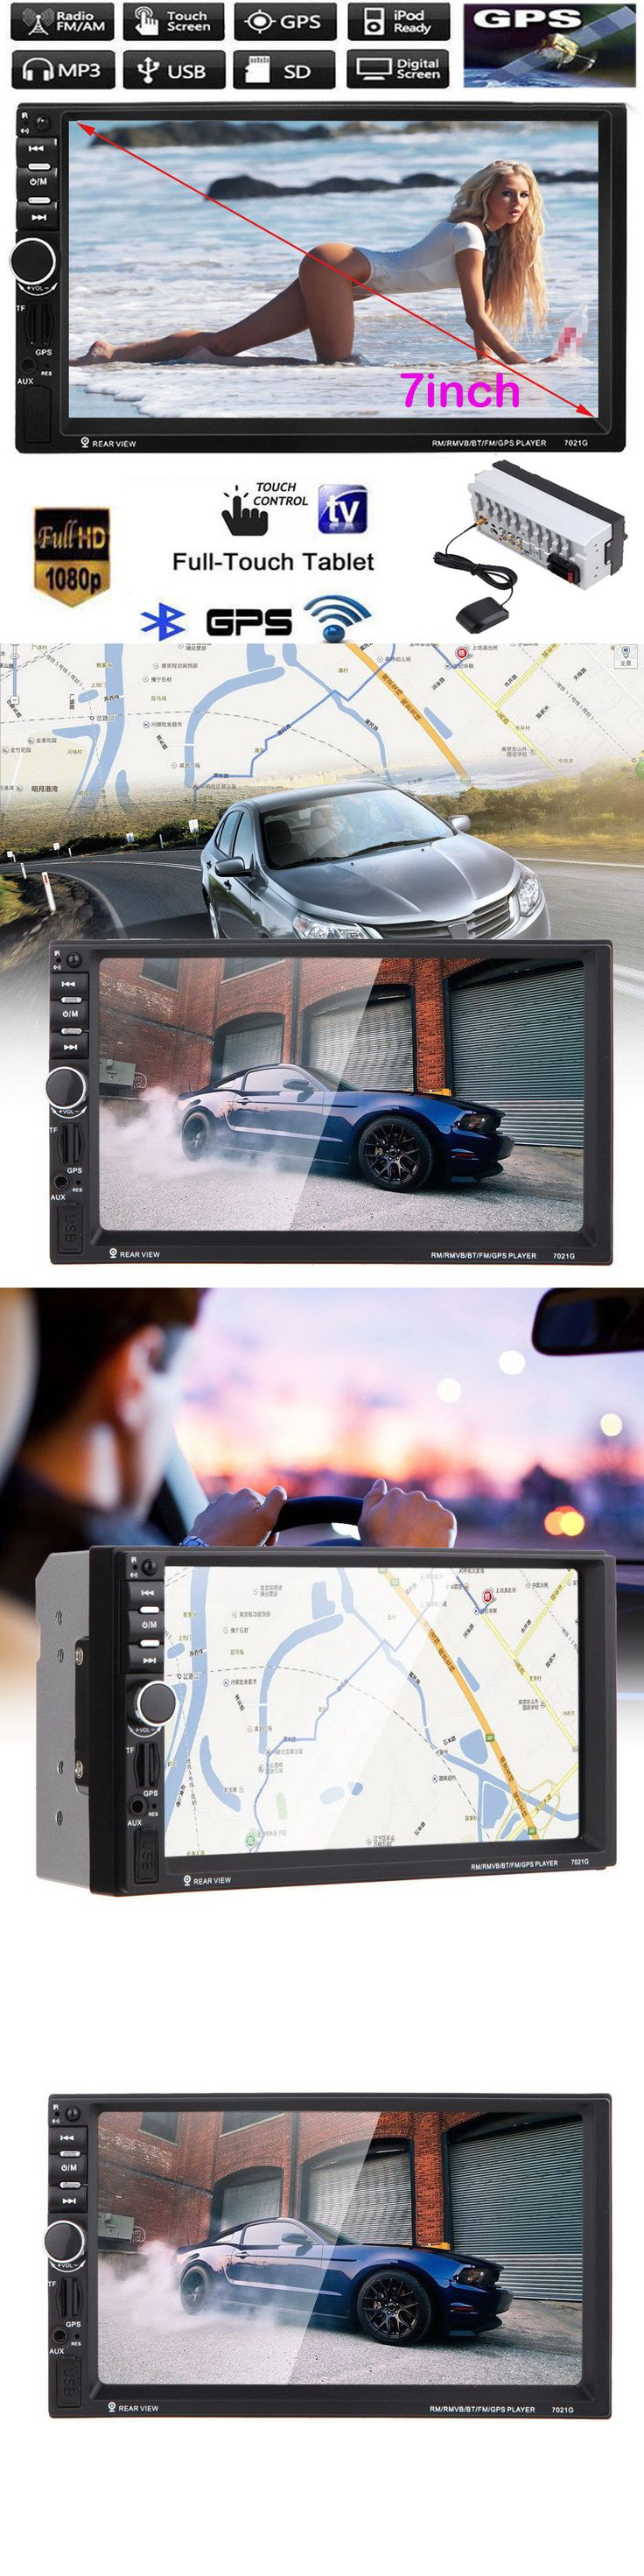 Vehicle Electronics And GPS: 7 Double 2Din Car Mp5 Mp3 Player Bluetooth Touchscreen Stereo Radio Usb/Aux Gps -> BUY IT NOW ONLY: $73.08 on eBay!